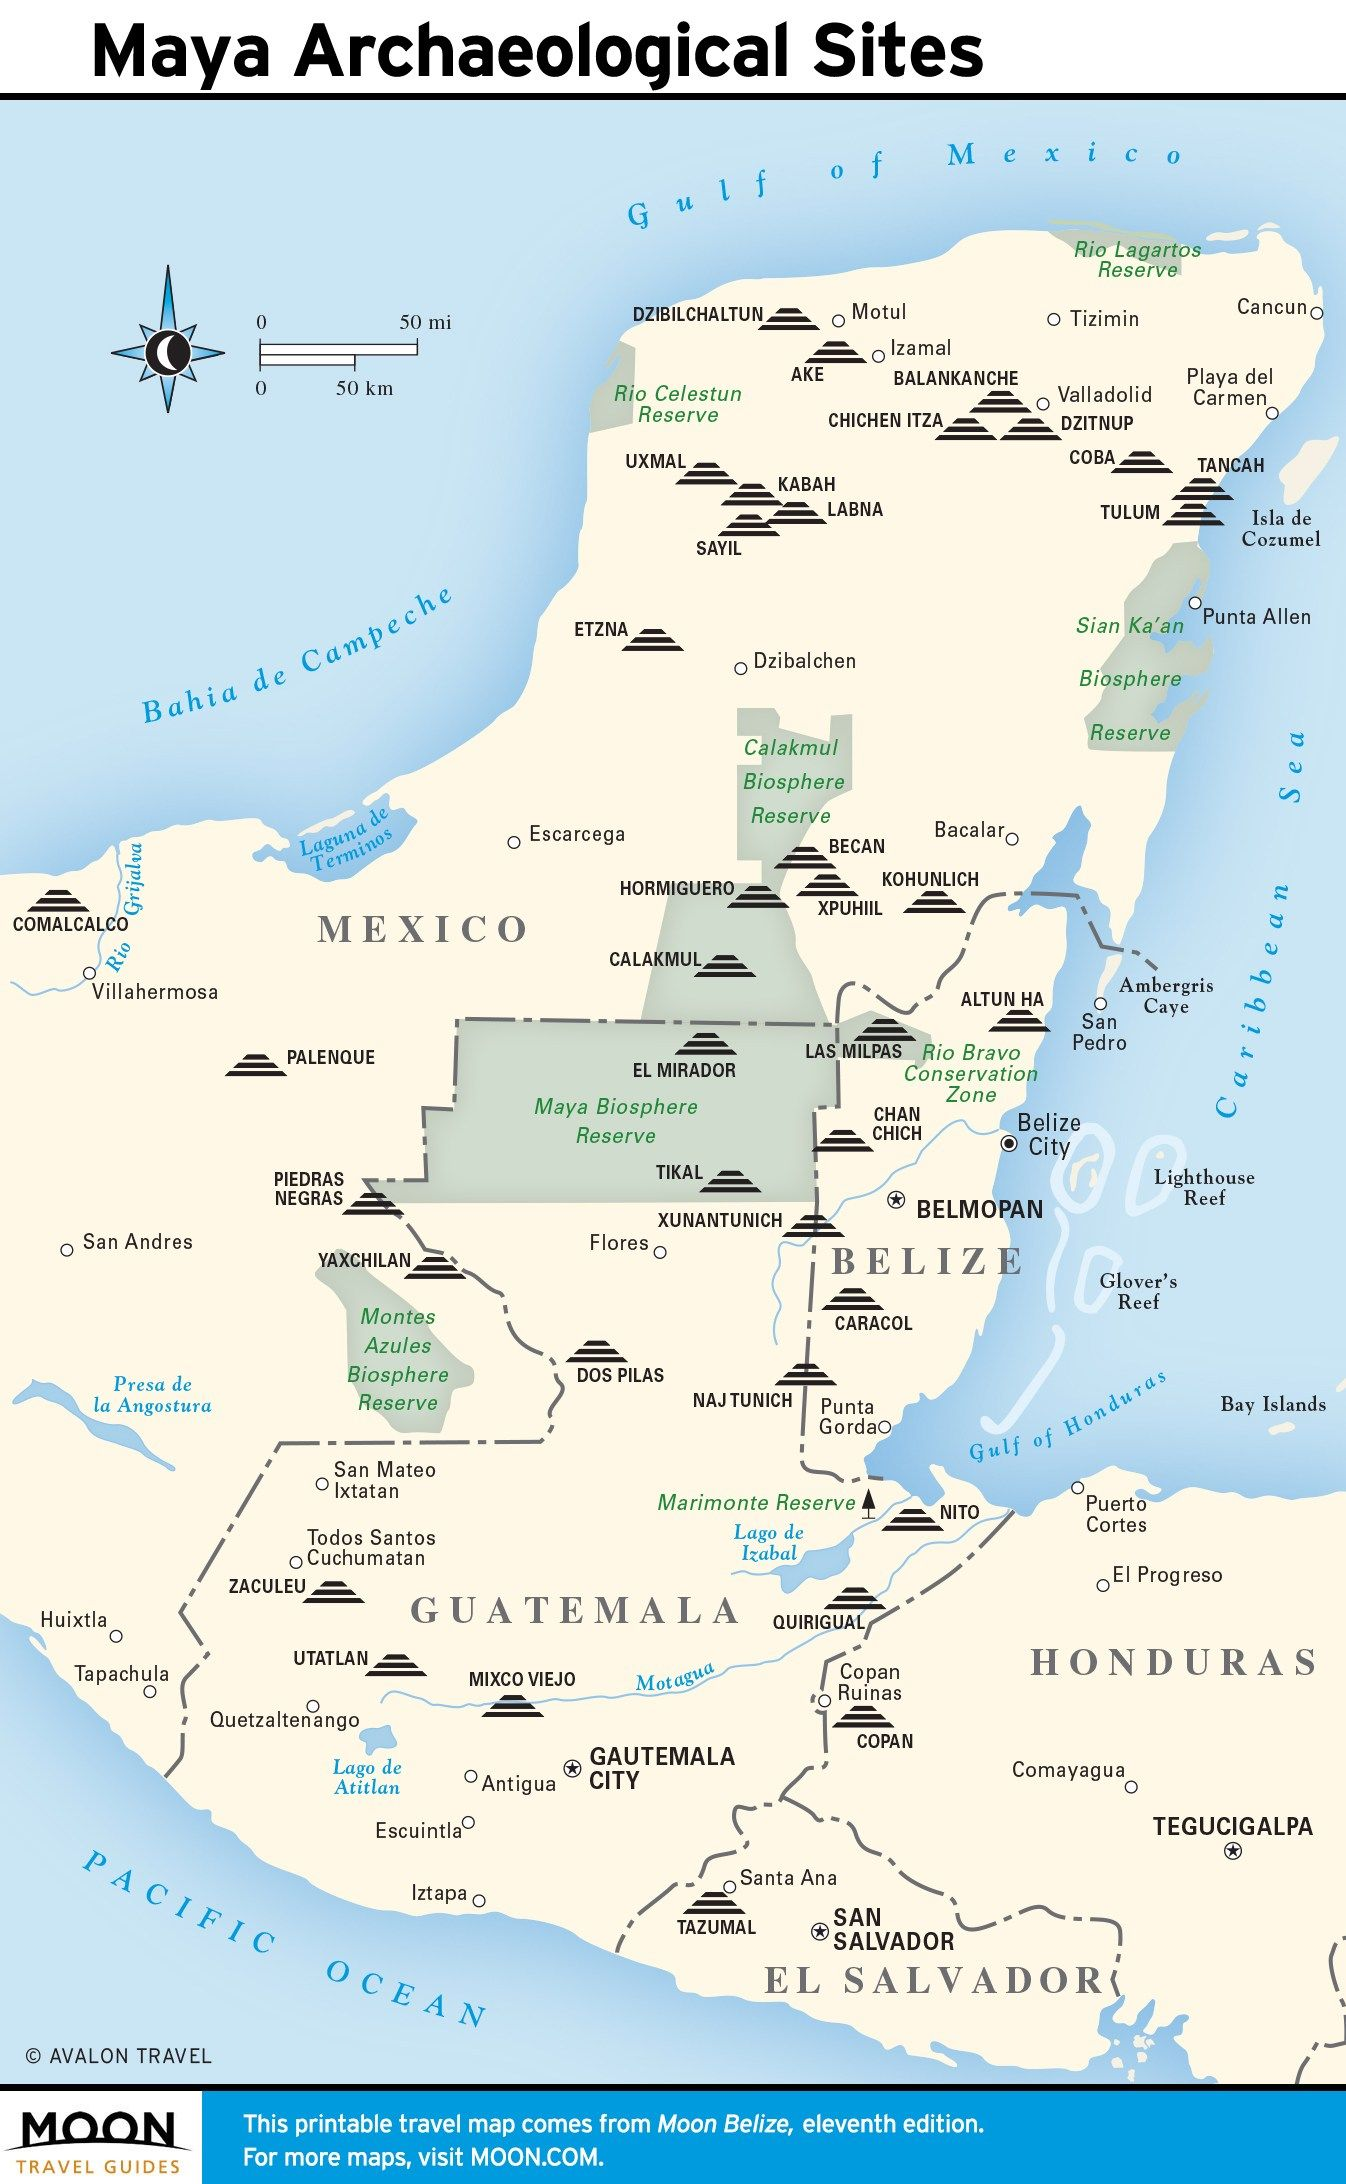 Maya Ruins in Belize: The Mundo Maya | Mayan history, Belize ... on knife of dreams map, artemis fowl map, wizard's first rule map, the way of kings map, shannara map, the fellowship of the ring map, dante's inferno map, the sword of truth map, malazan book of the fallen map, the lord of the rings map, ender's game map, the chronicles of narnia map, inheritance cycle map, eye of the world map,